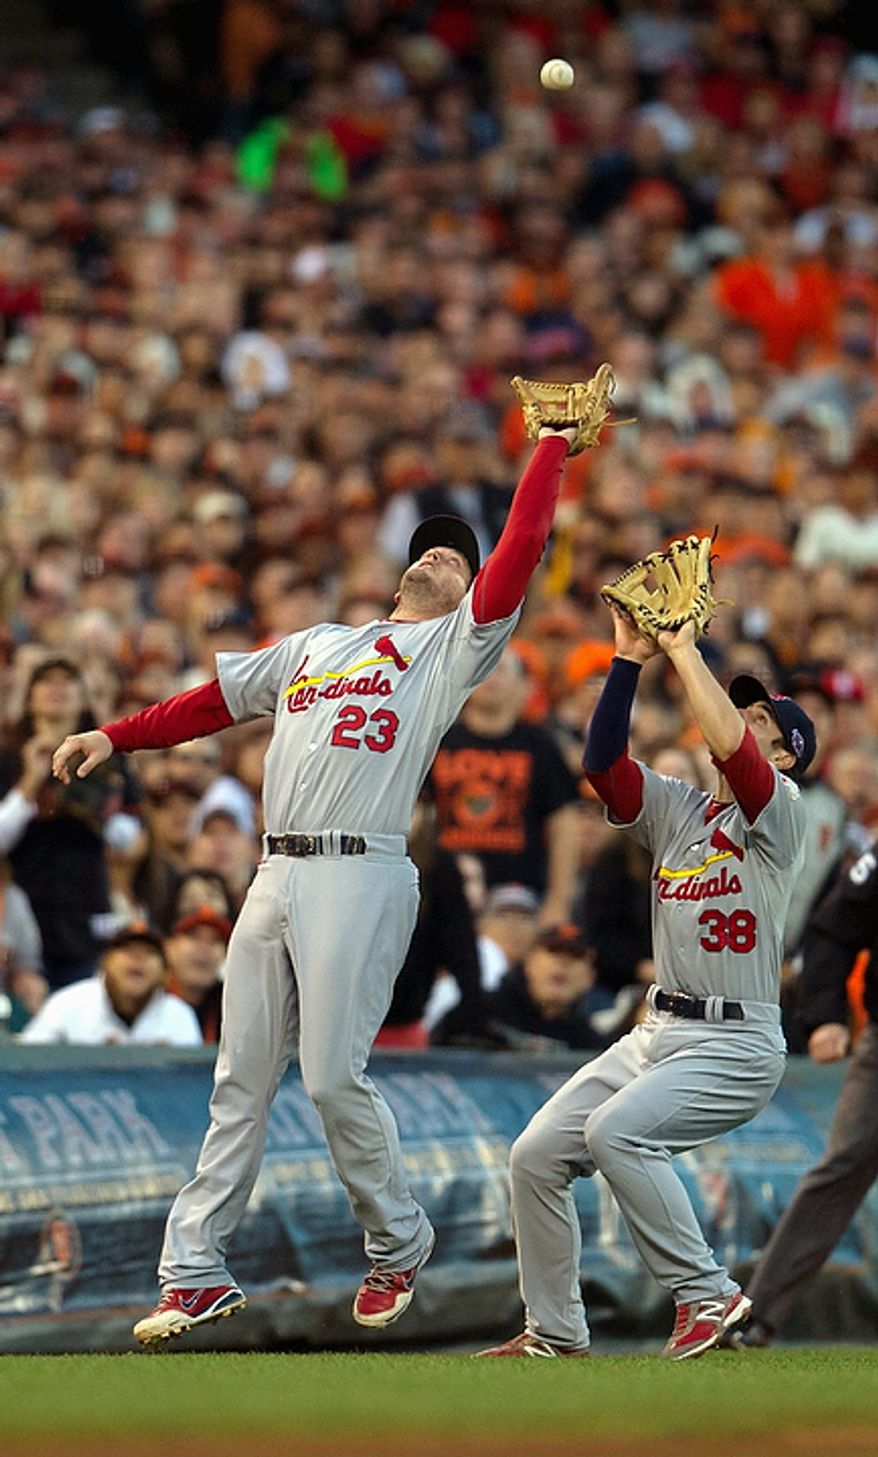 St. Louis Cardinals third baseman David Freese (23) and shortstop Pete Kozma try and play the same foul ball from San Francisco Giants' Angel Pagan during Game 1 of the National League baseball championship series, Sunday, Oct. 14, 2012, in San Francisco. (AP Photo/The Sacramento Bee, Jose Luis Villegas)